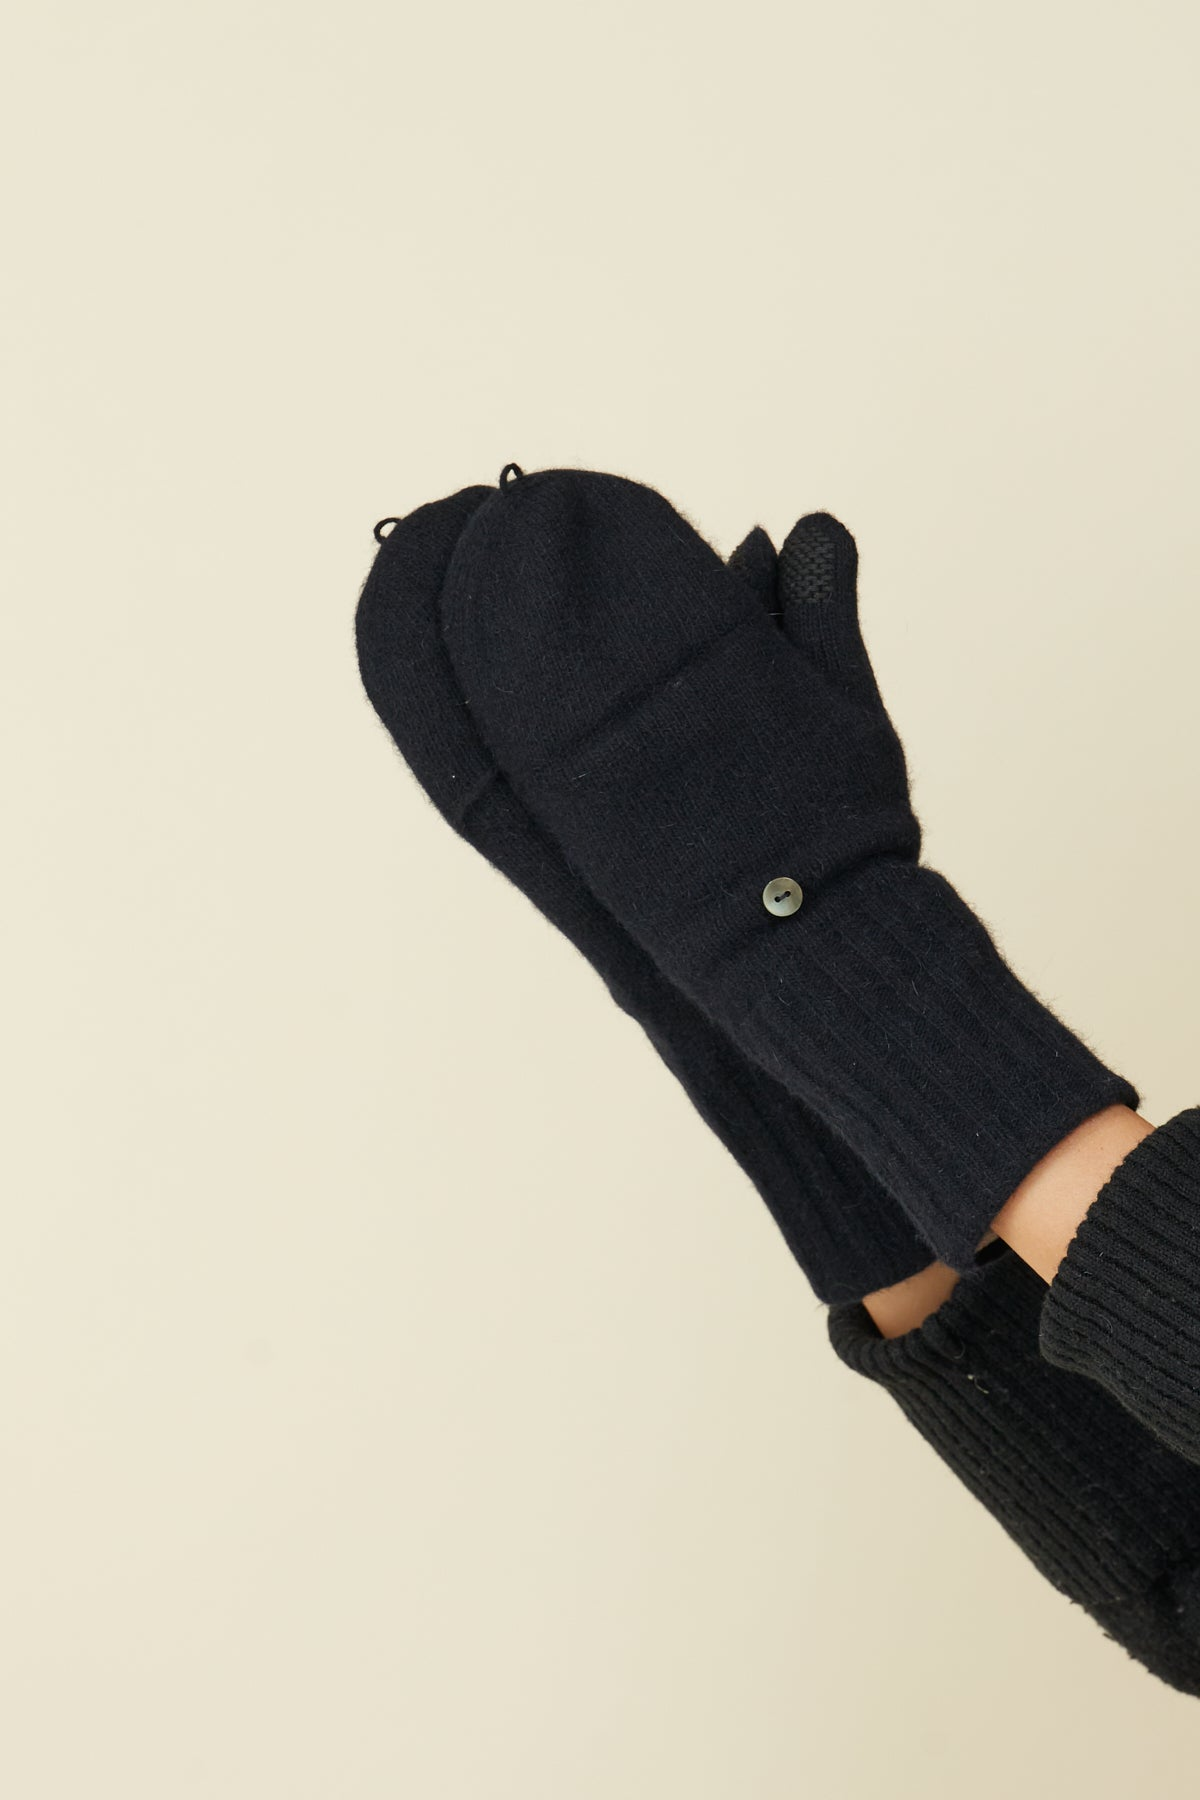 Unisex Flip Top Mitten with FIBREHEAT™ Self Heating Liner